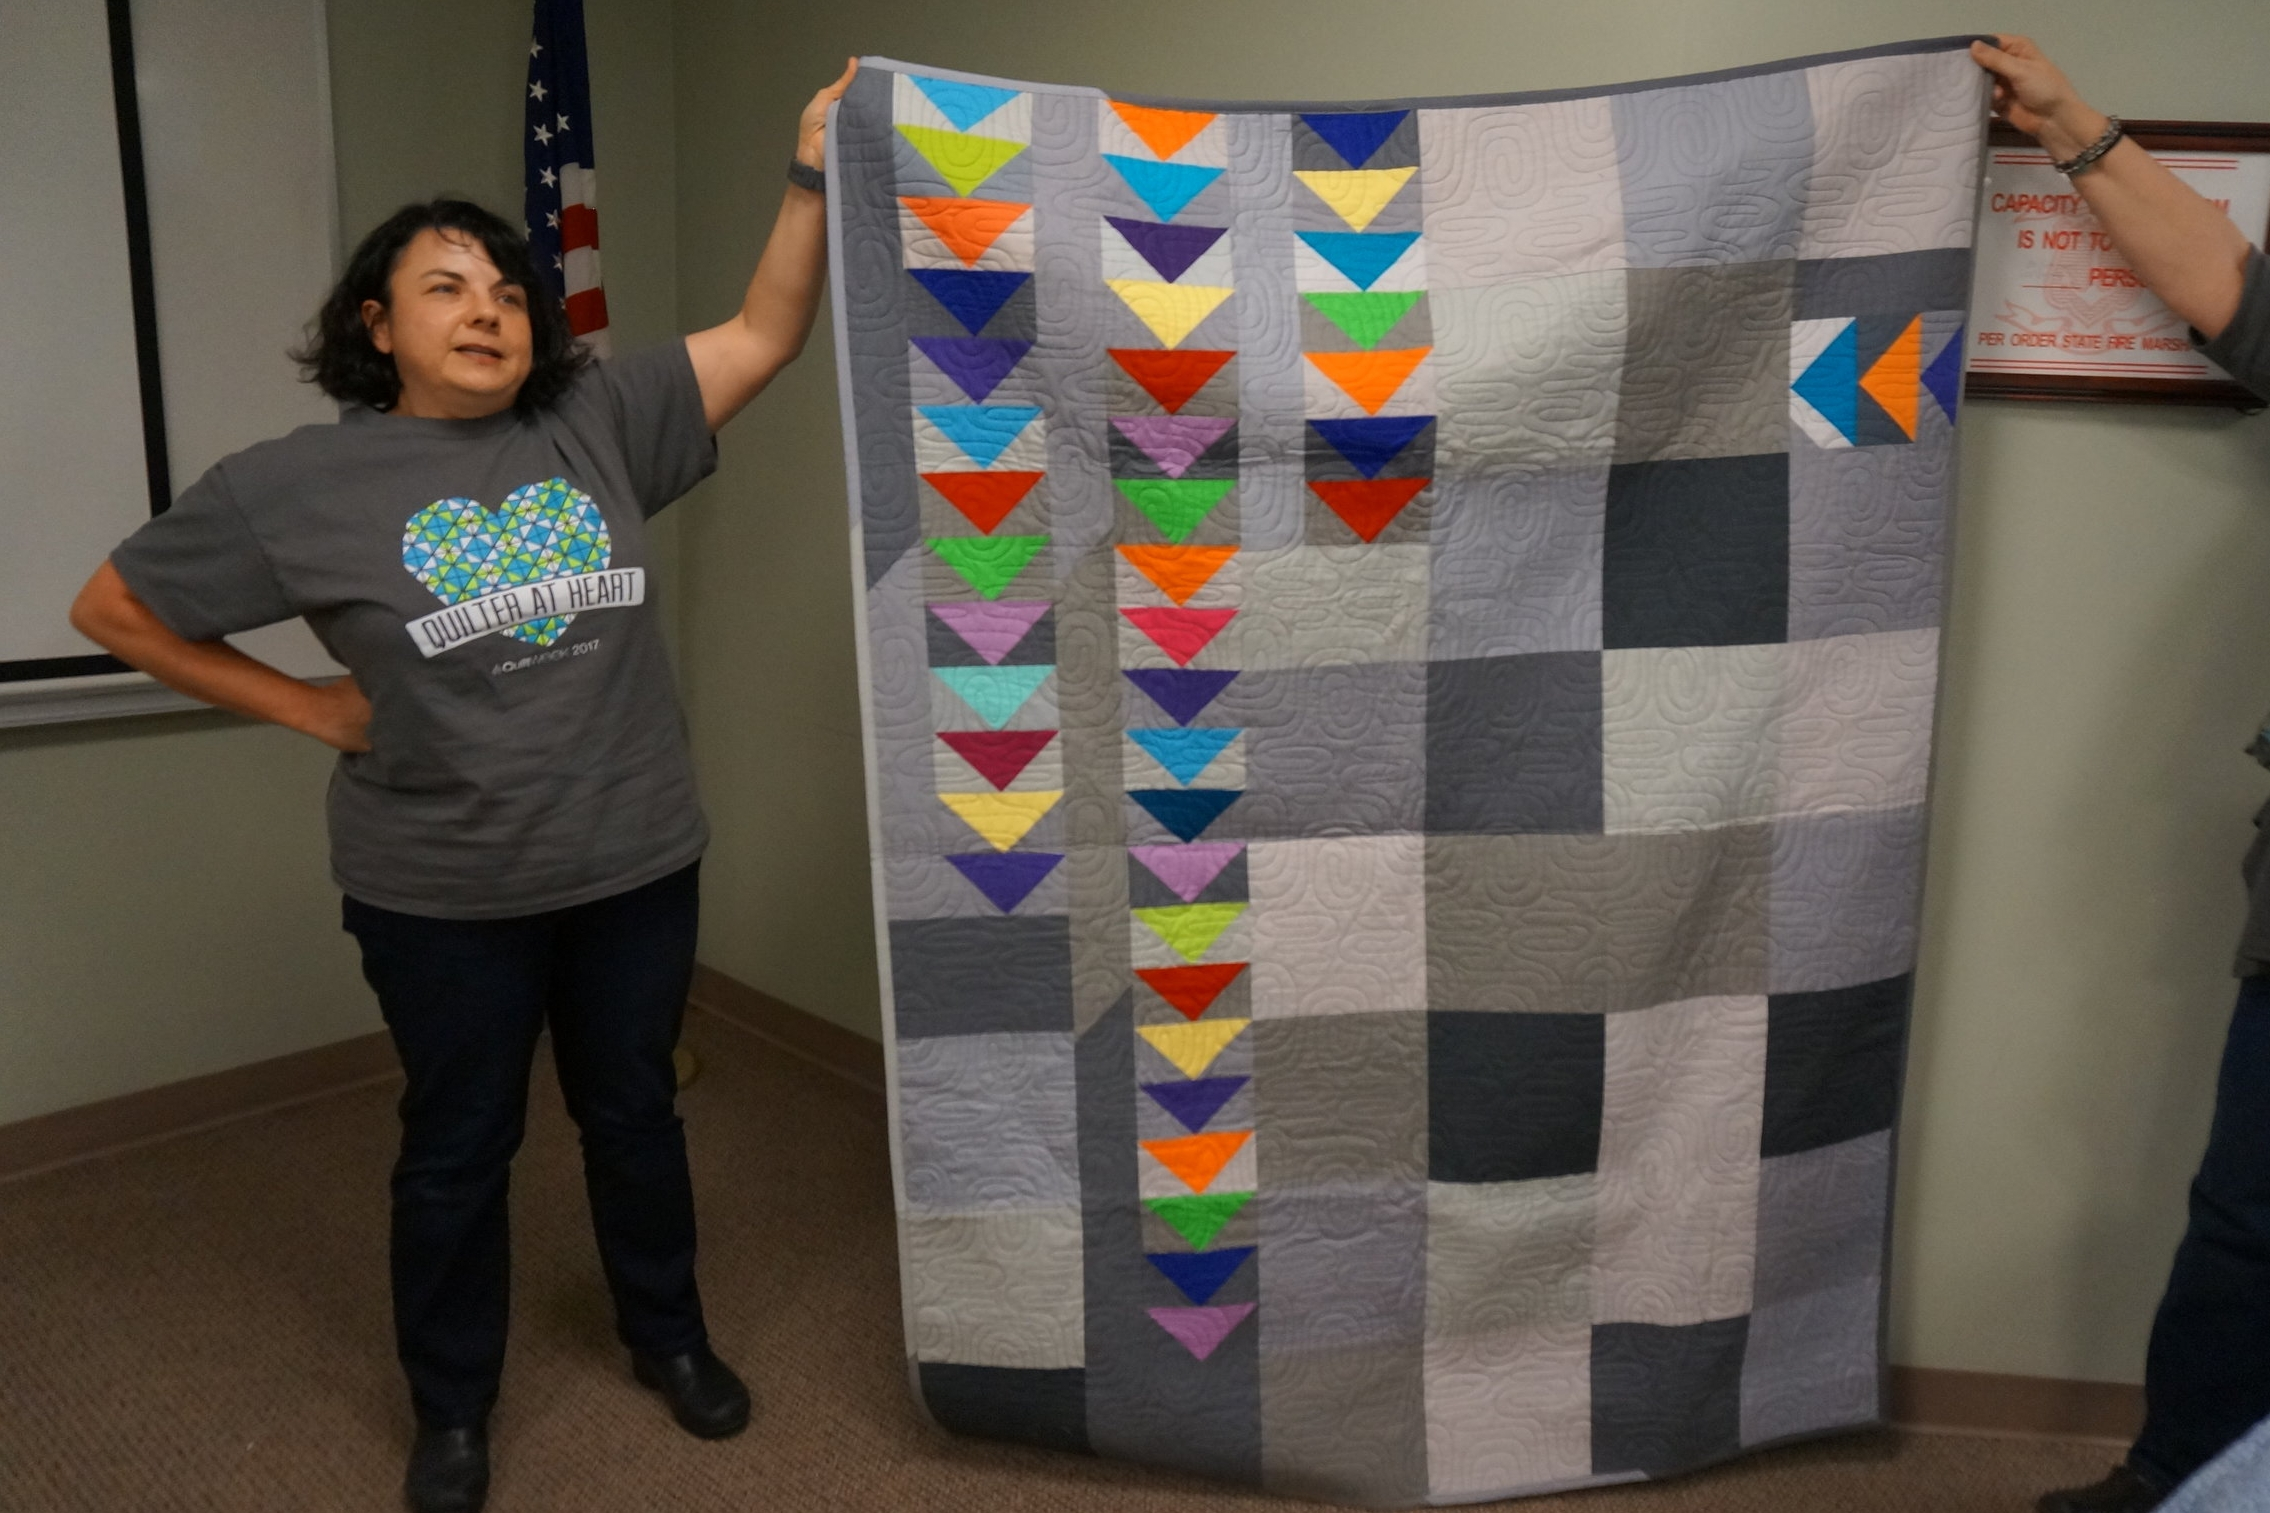 - Chrissy made her recent quilt as part of the guild's flying geese block swap and challenge.